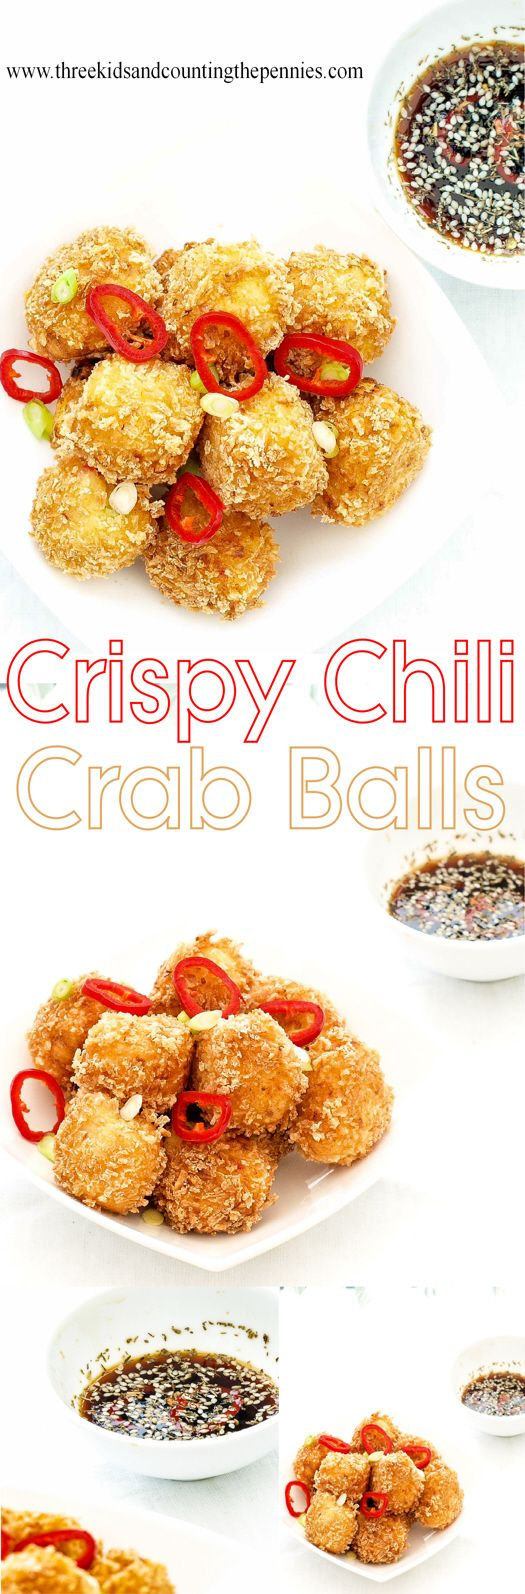 These crispy little crab balls are super addictive and take very little effort to throw together.